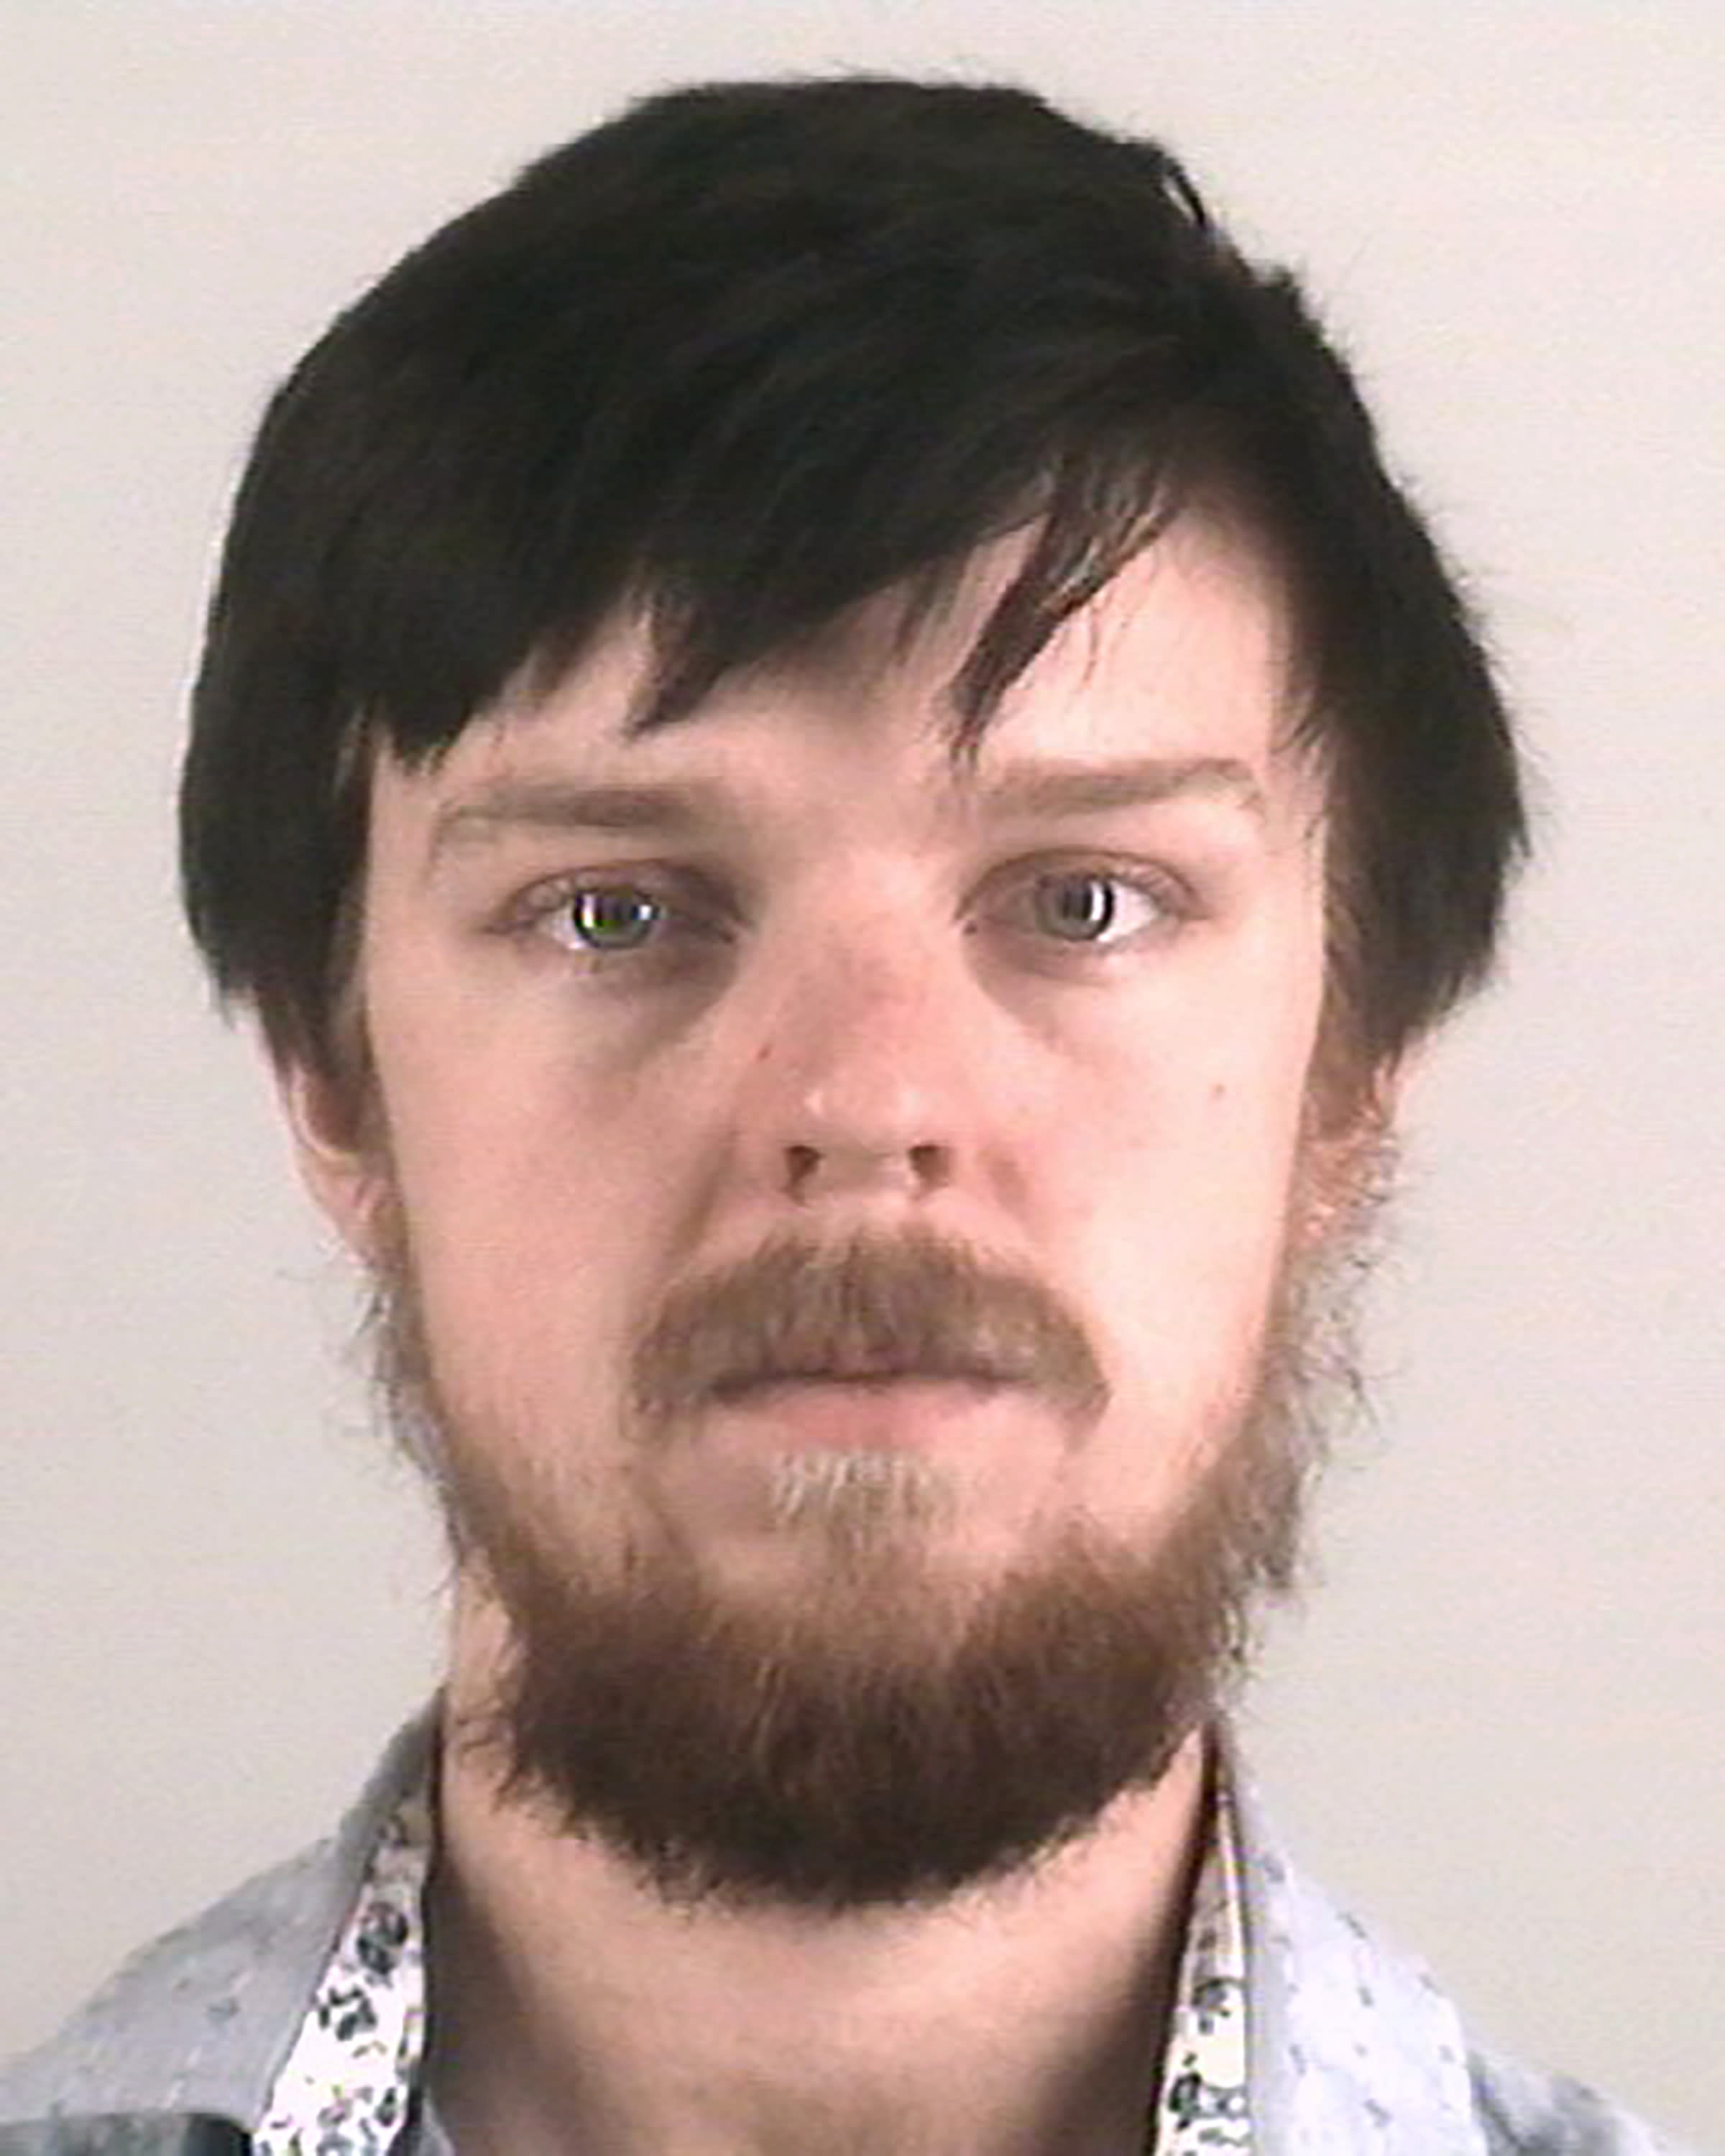 Texas 'Affluenza Teen' Arrested for Probation Violation